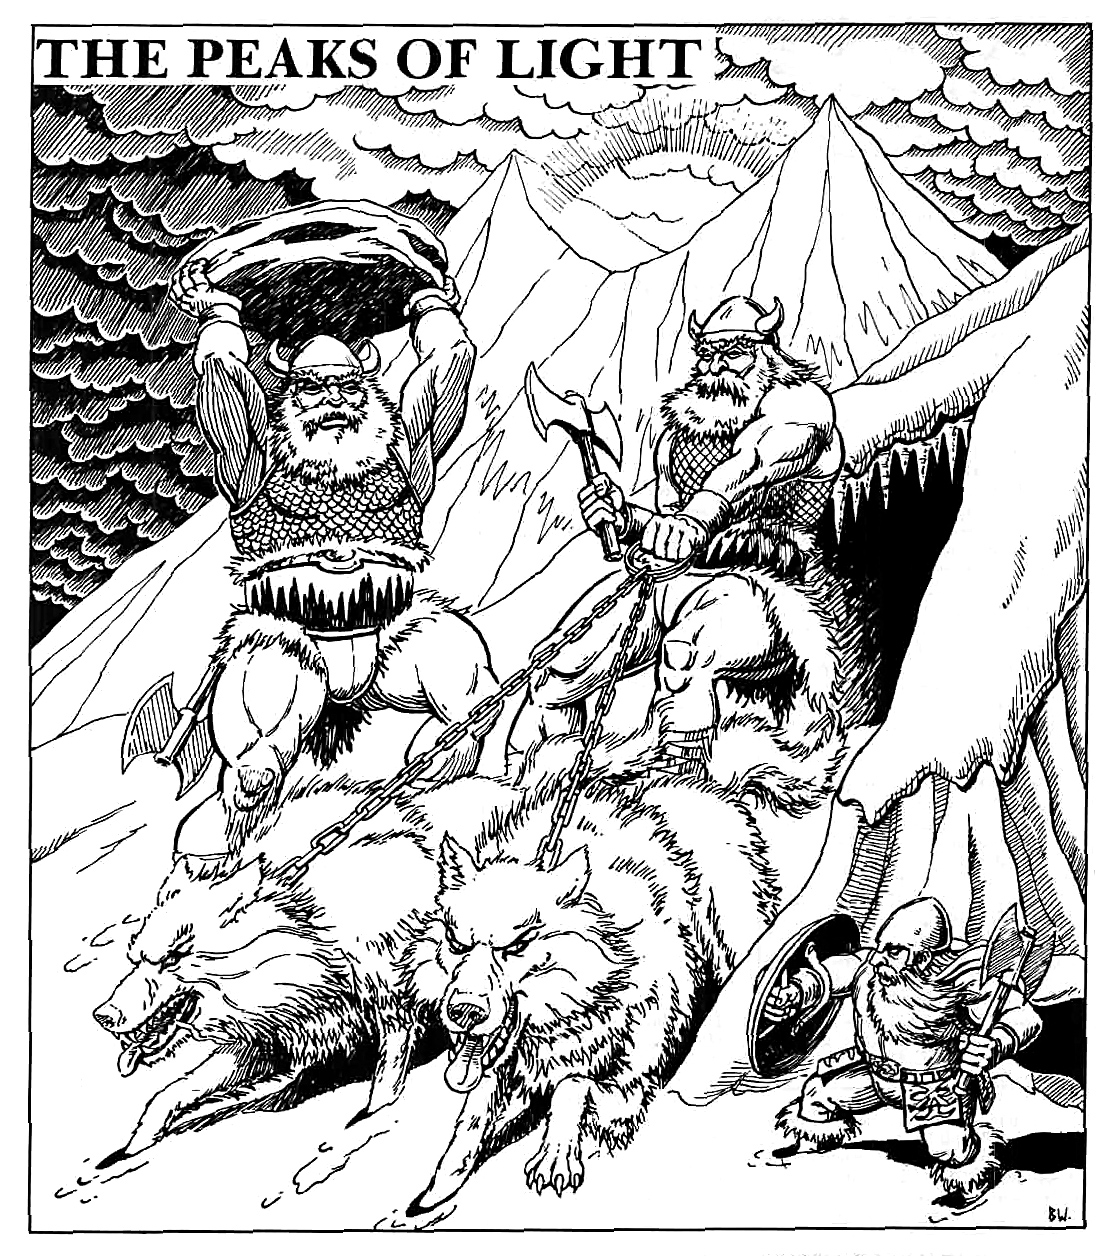 winter wolves frost giants Lupi Invernali e giganti del gelo - by Brian Williams Dark Clouds Gather (1985-12) © Wizards of the Coast & Hasbro